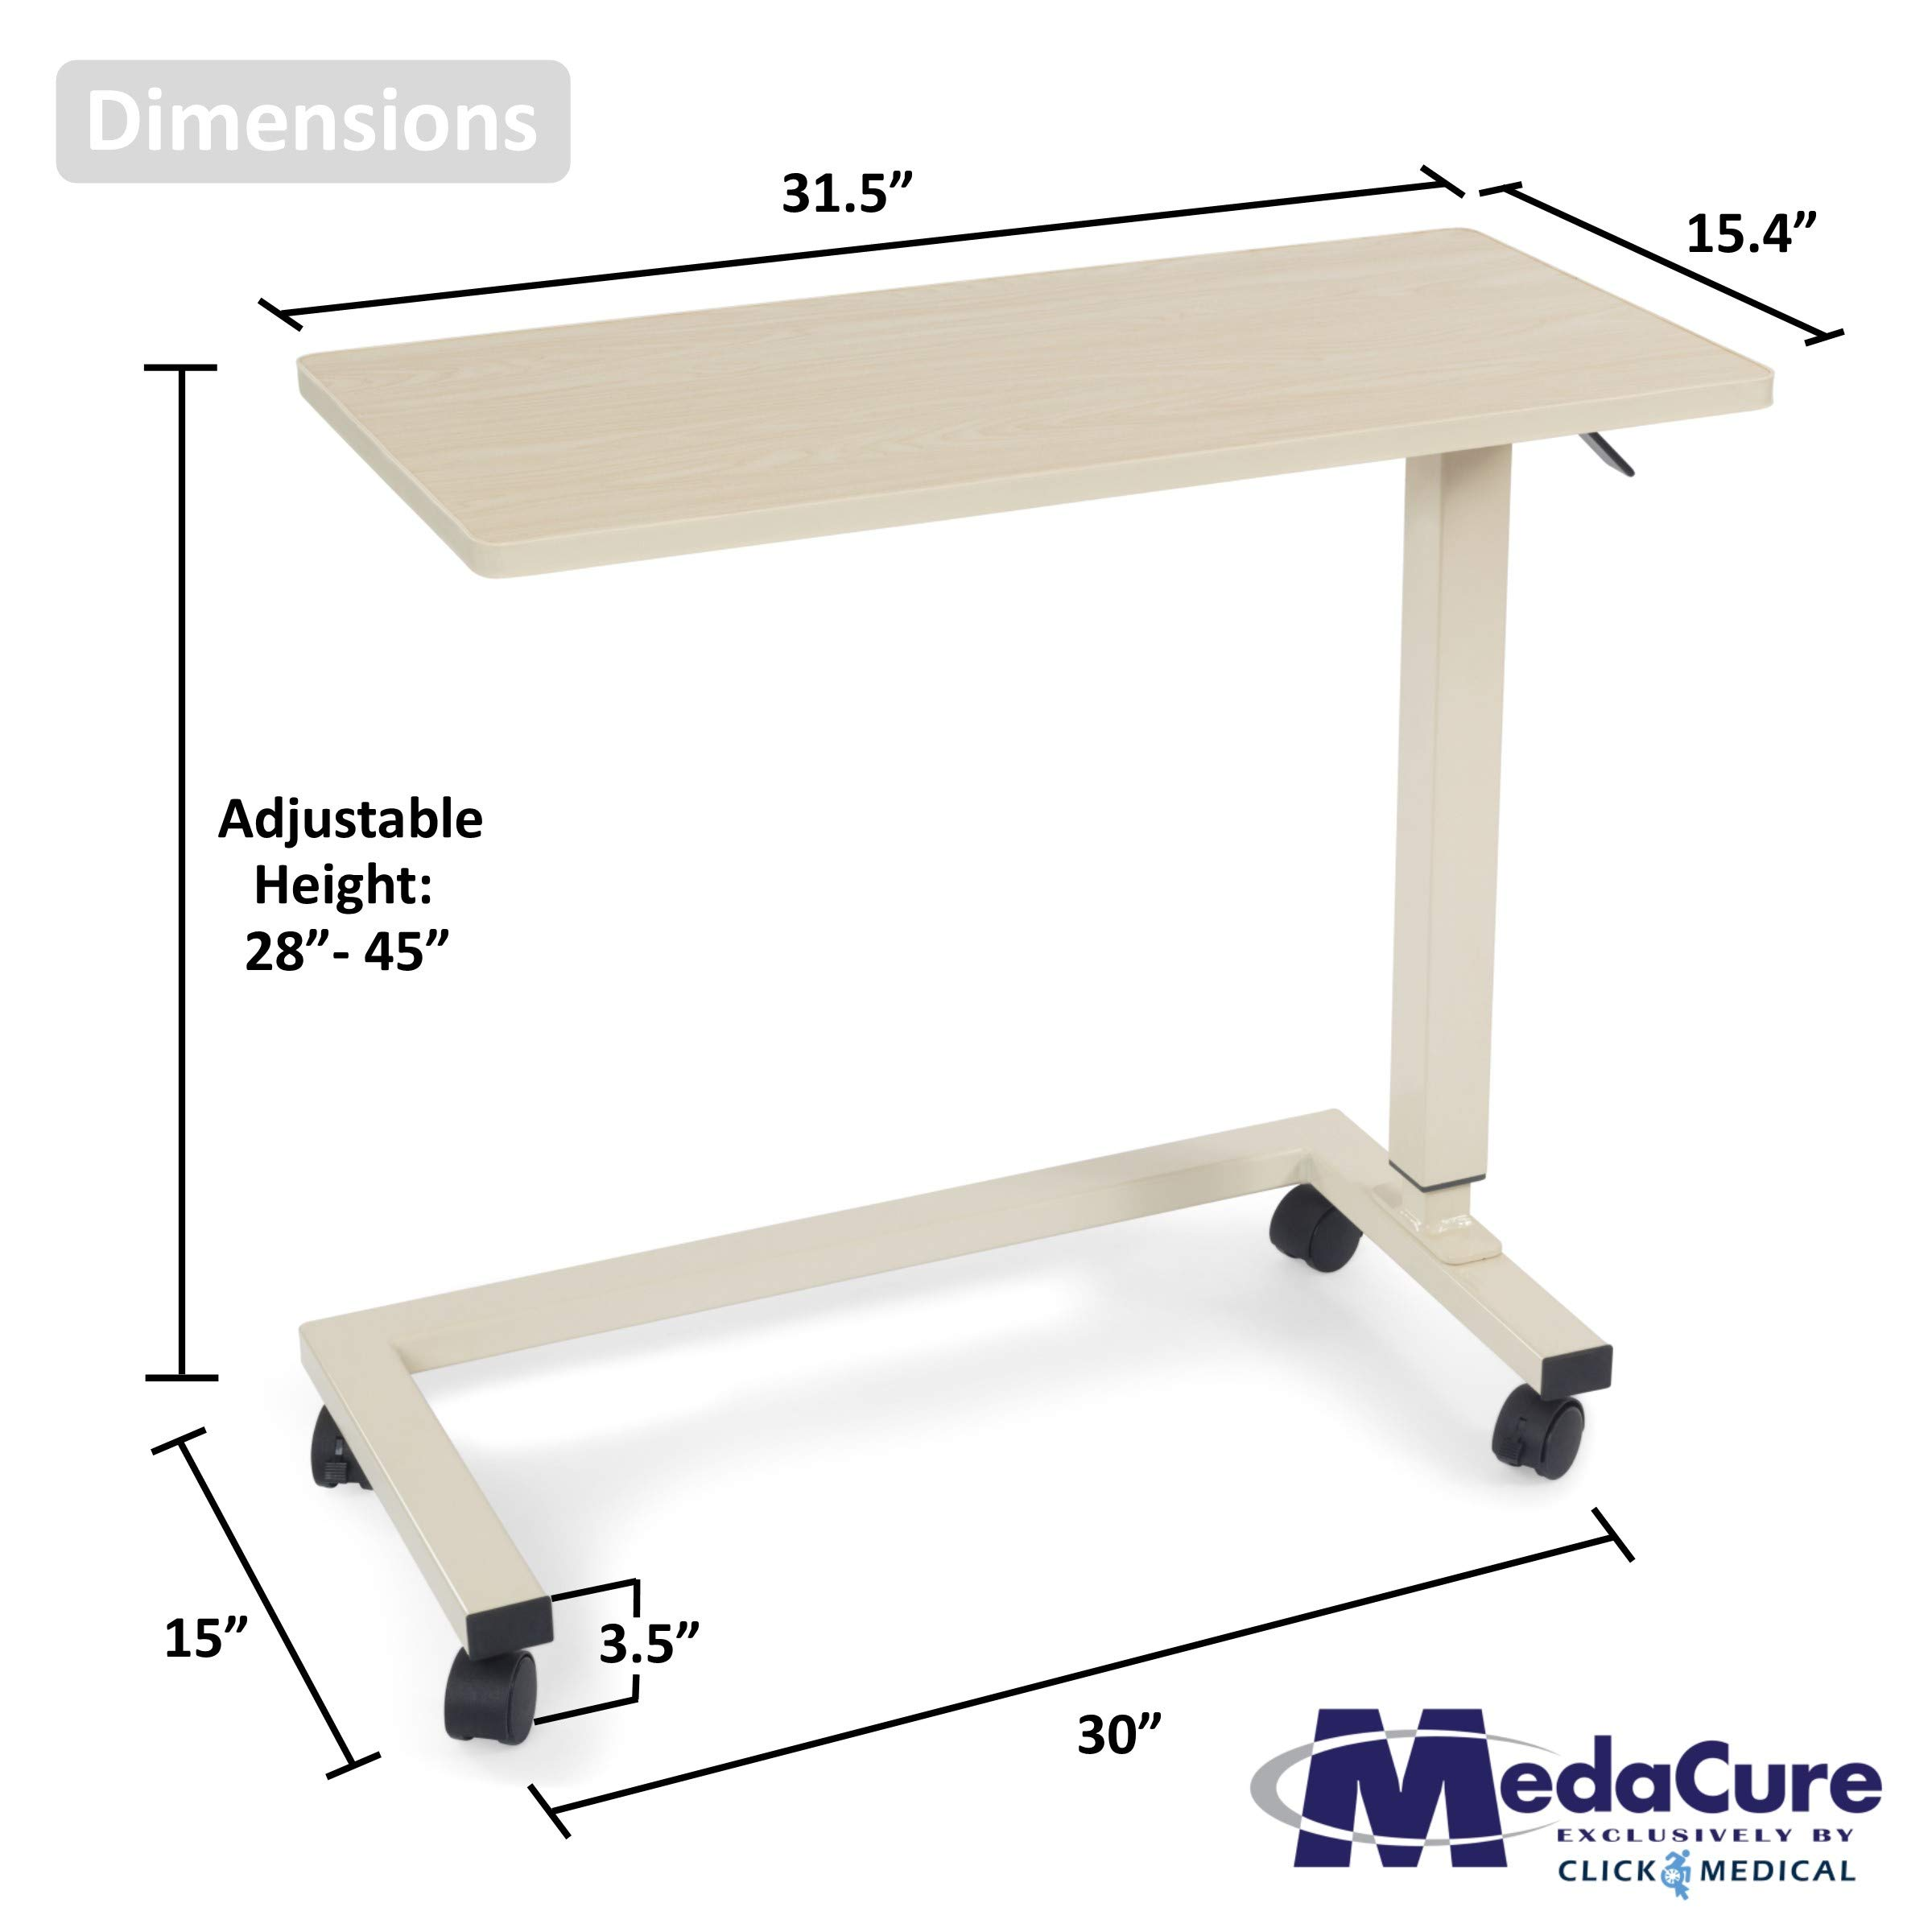 Medical Height Adjustable Overbed Table - Flame Resistant and Anti-Spill Rim - Heavy Duty Steel Frame and Swivel Locking Casters for Home, Hospital,Laptop, and Breakfast– 50lb Weight Capacity. (Oak) by Medacure (Image #1)